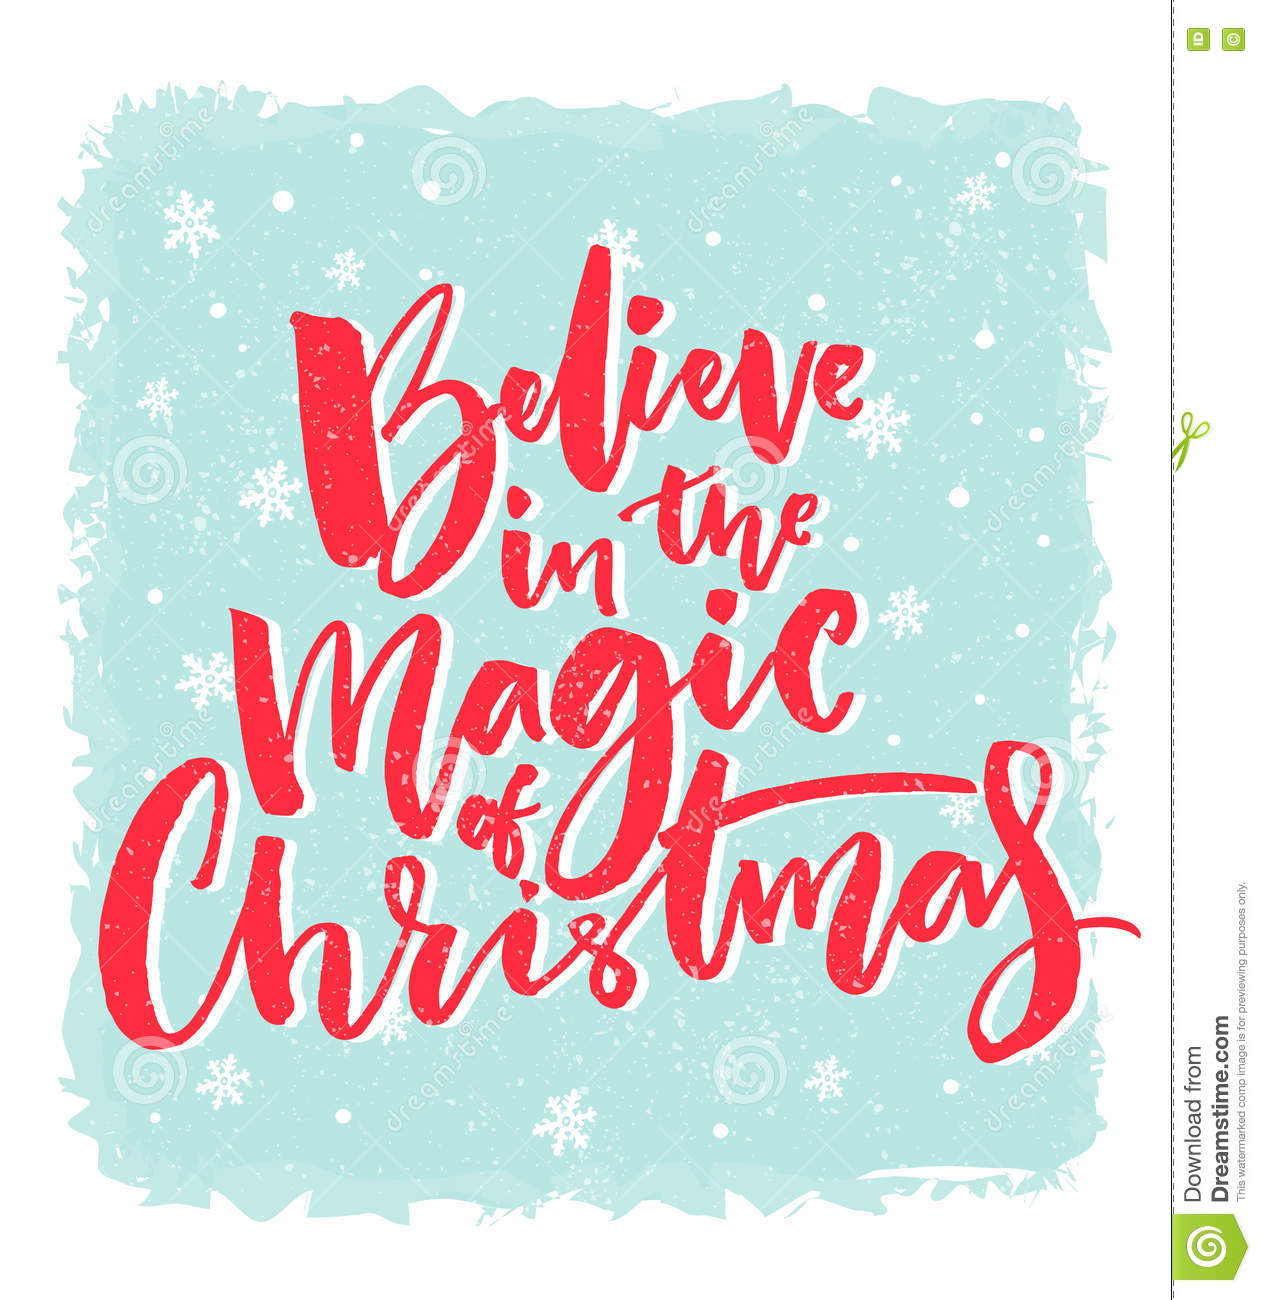 Christmas Card Design. Believe In The Magic Of Christmas. Inspirational Xmas  Quote. Red Brush Calligraphy Text On Blue Awesome Design